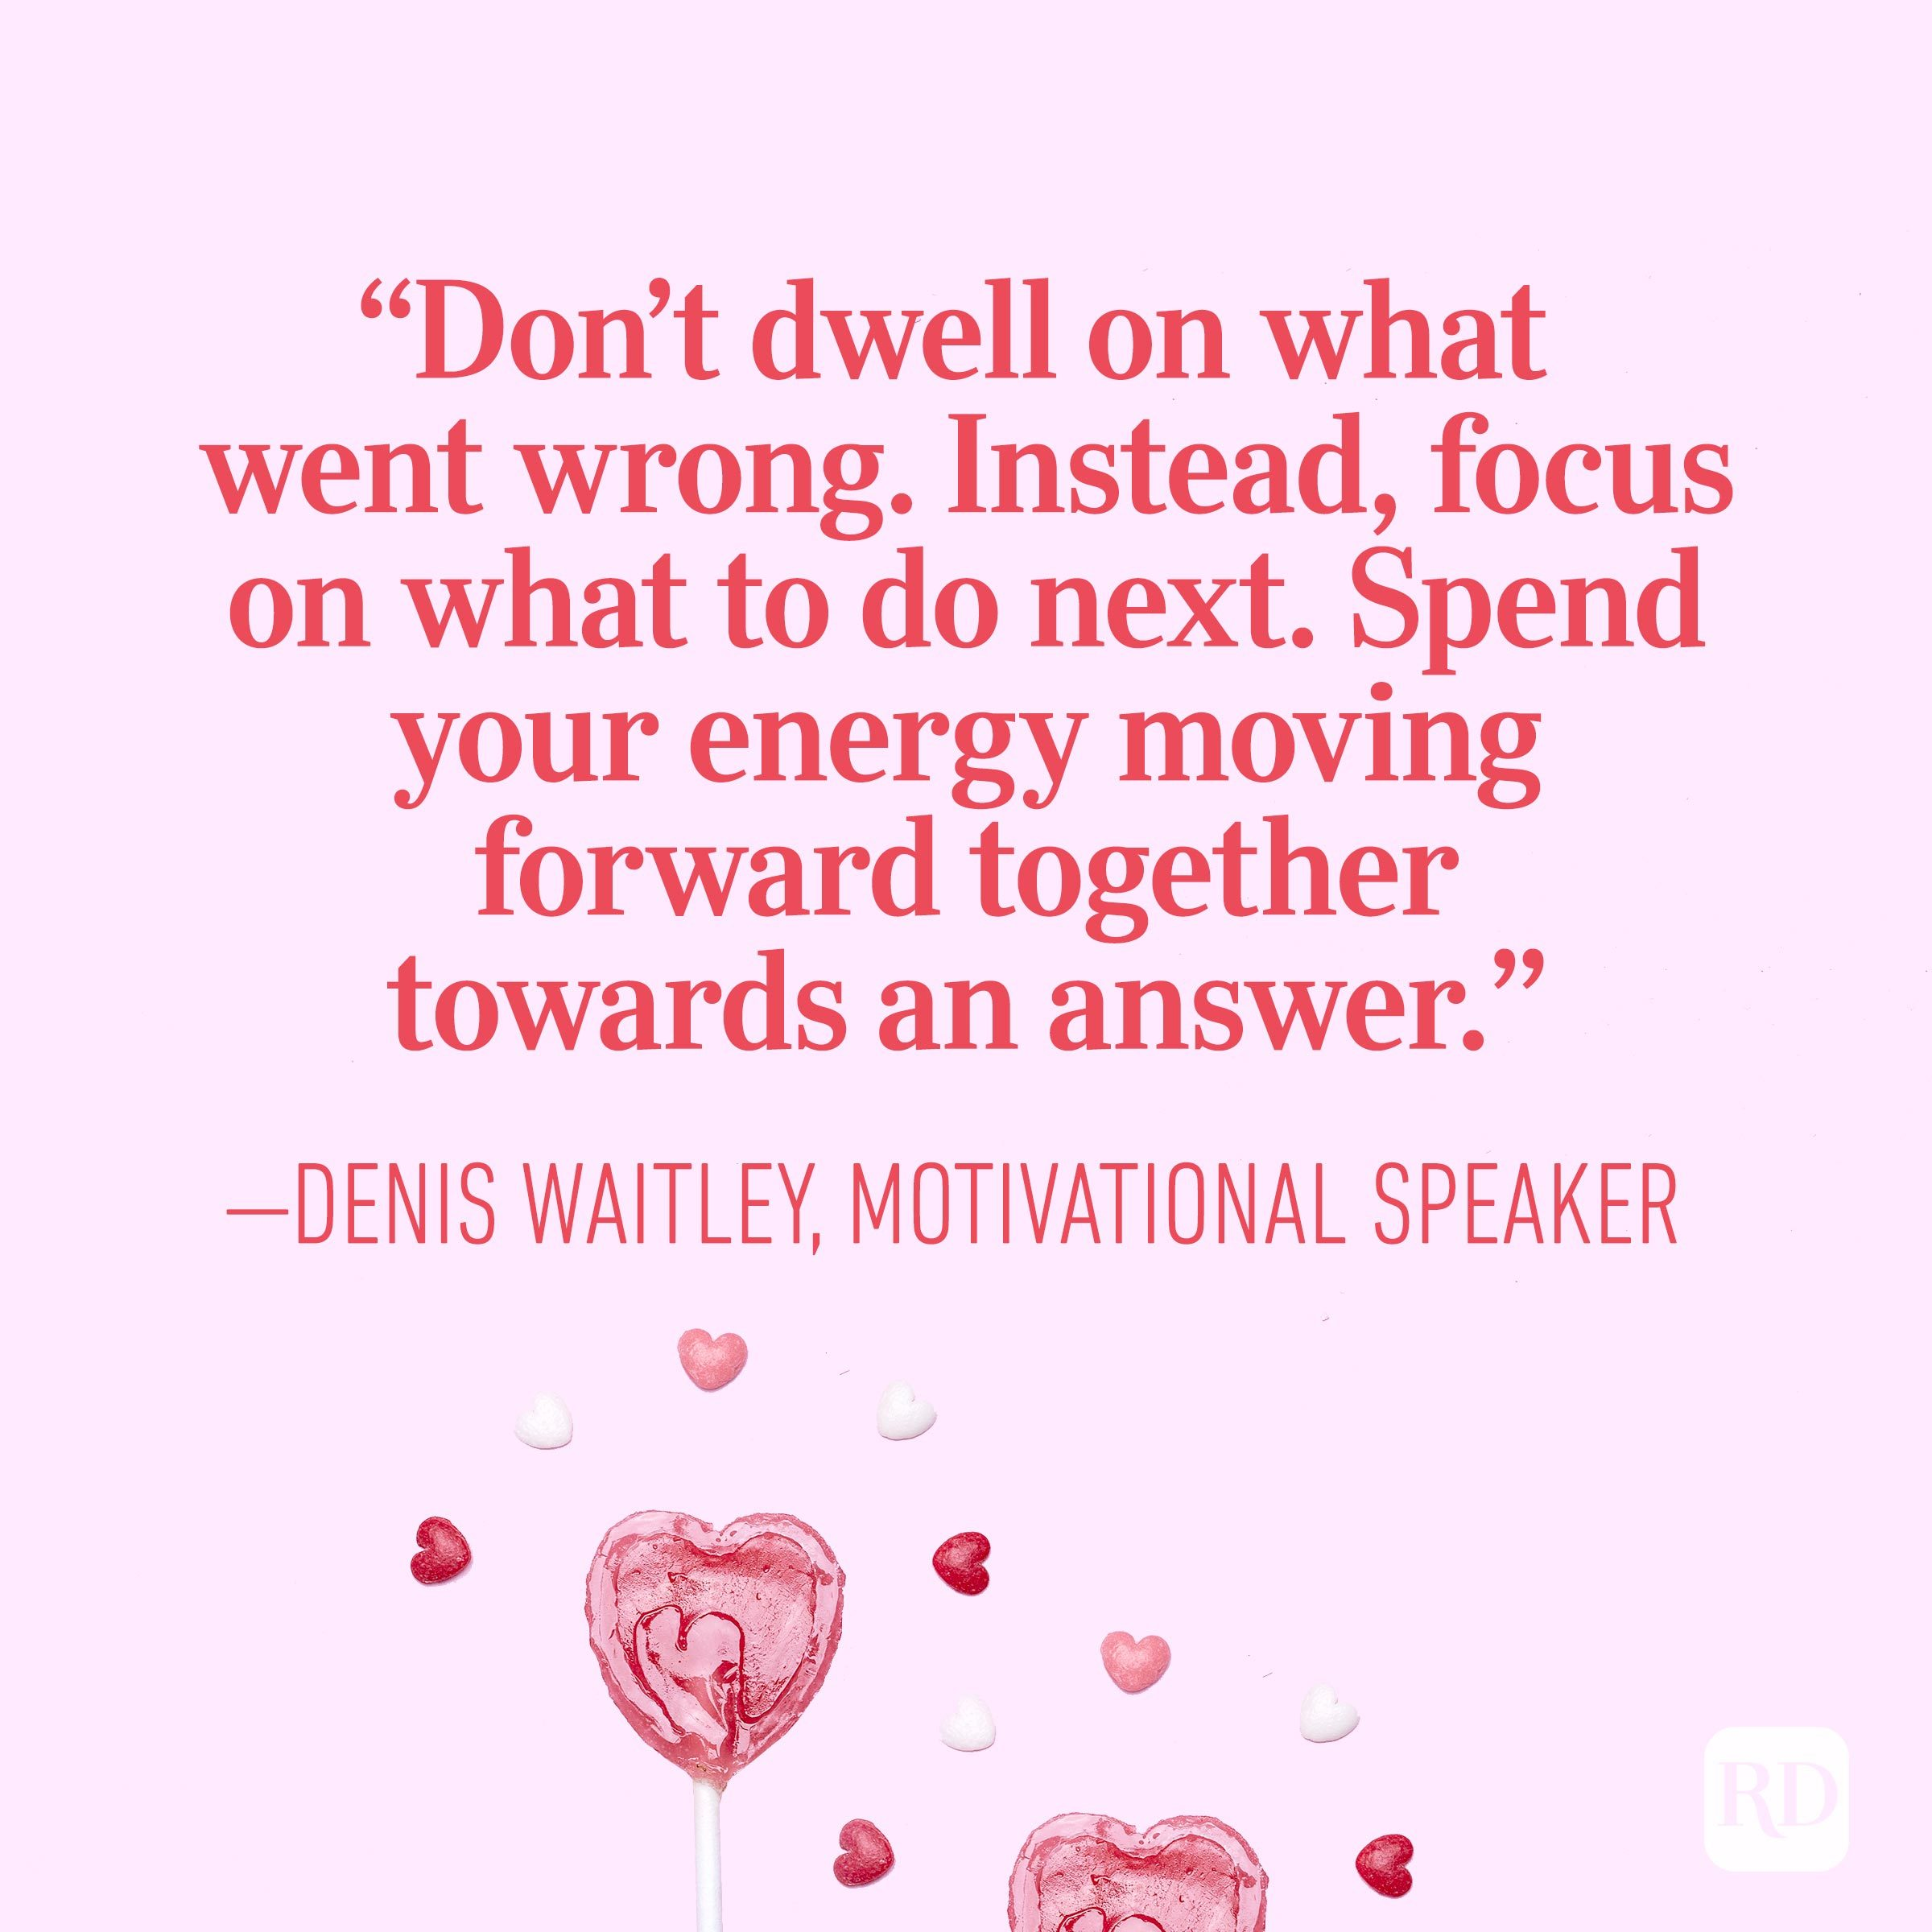 """Don't dwell on what went wrong. Instead, focus on what to do next. Spend your energy moving forward together towards an answer.""— Denis Waitley, motivational speaker"